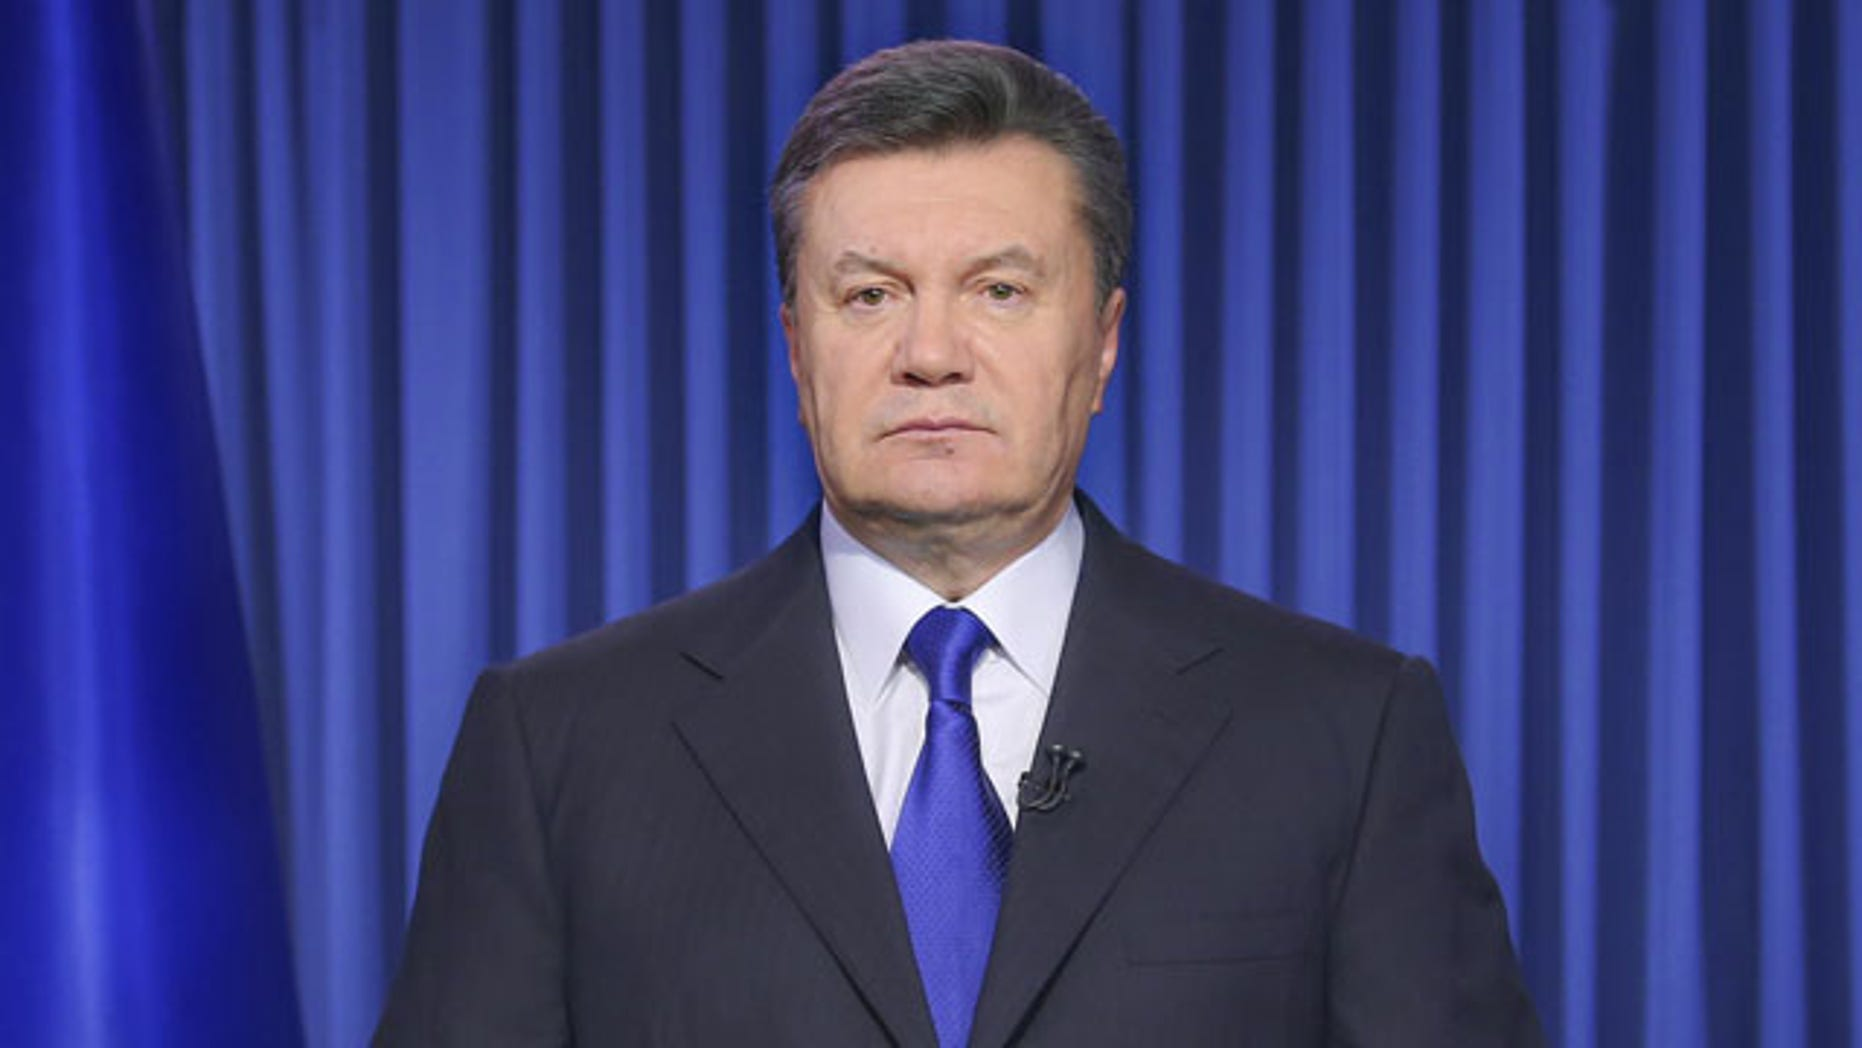 File- This Feb. 19, 2014, file photo shows Ukrainian President Viktor Yanukovych addressing the nation on a live TV broadcast in Kiev, Ukraine. (AP)